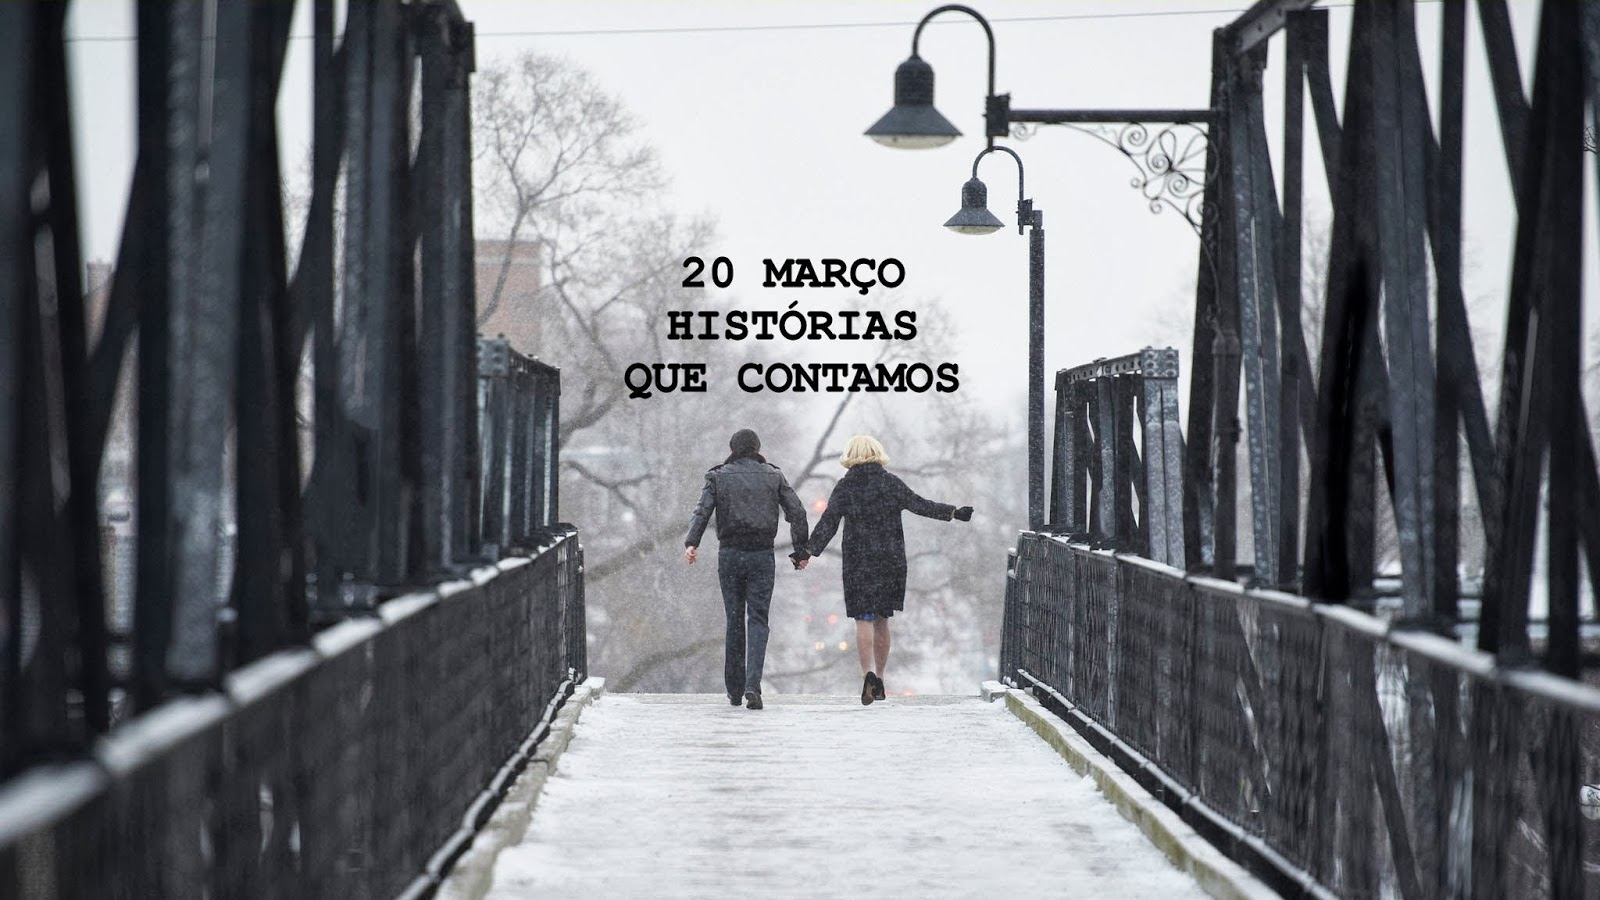 Histórias Que Contamos - Stories We Tell (2012)